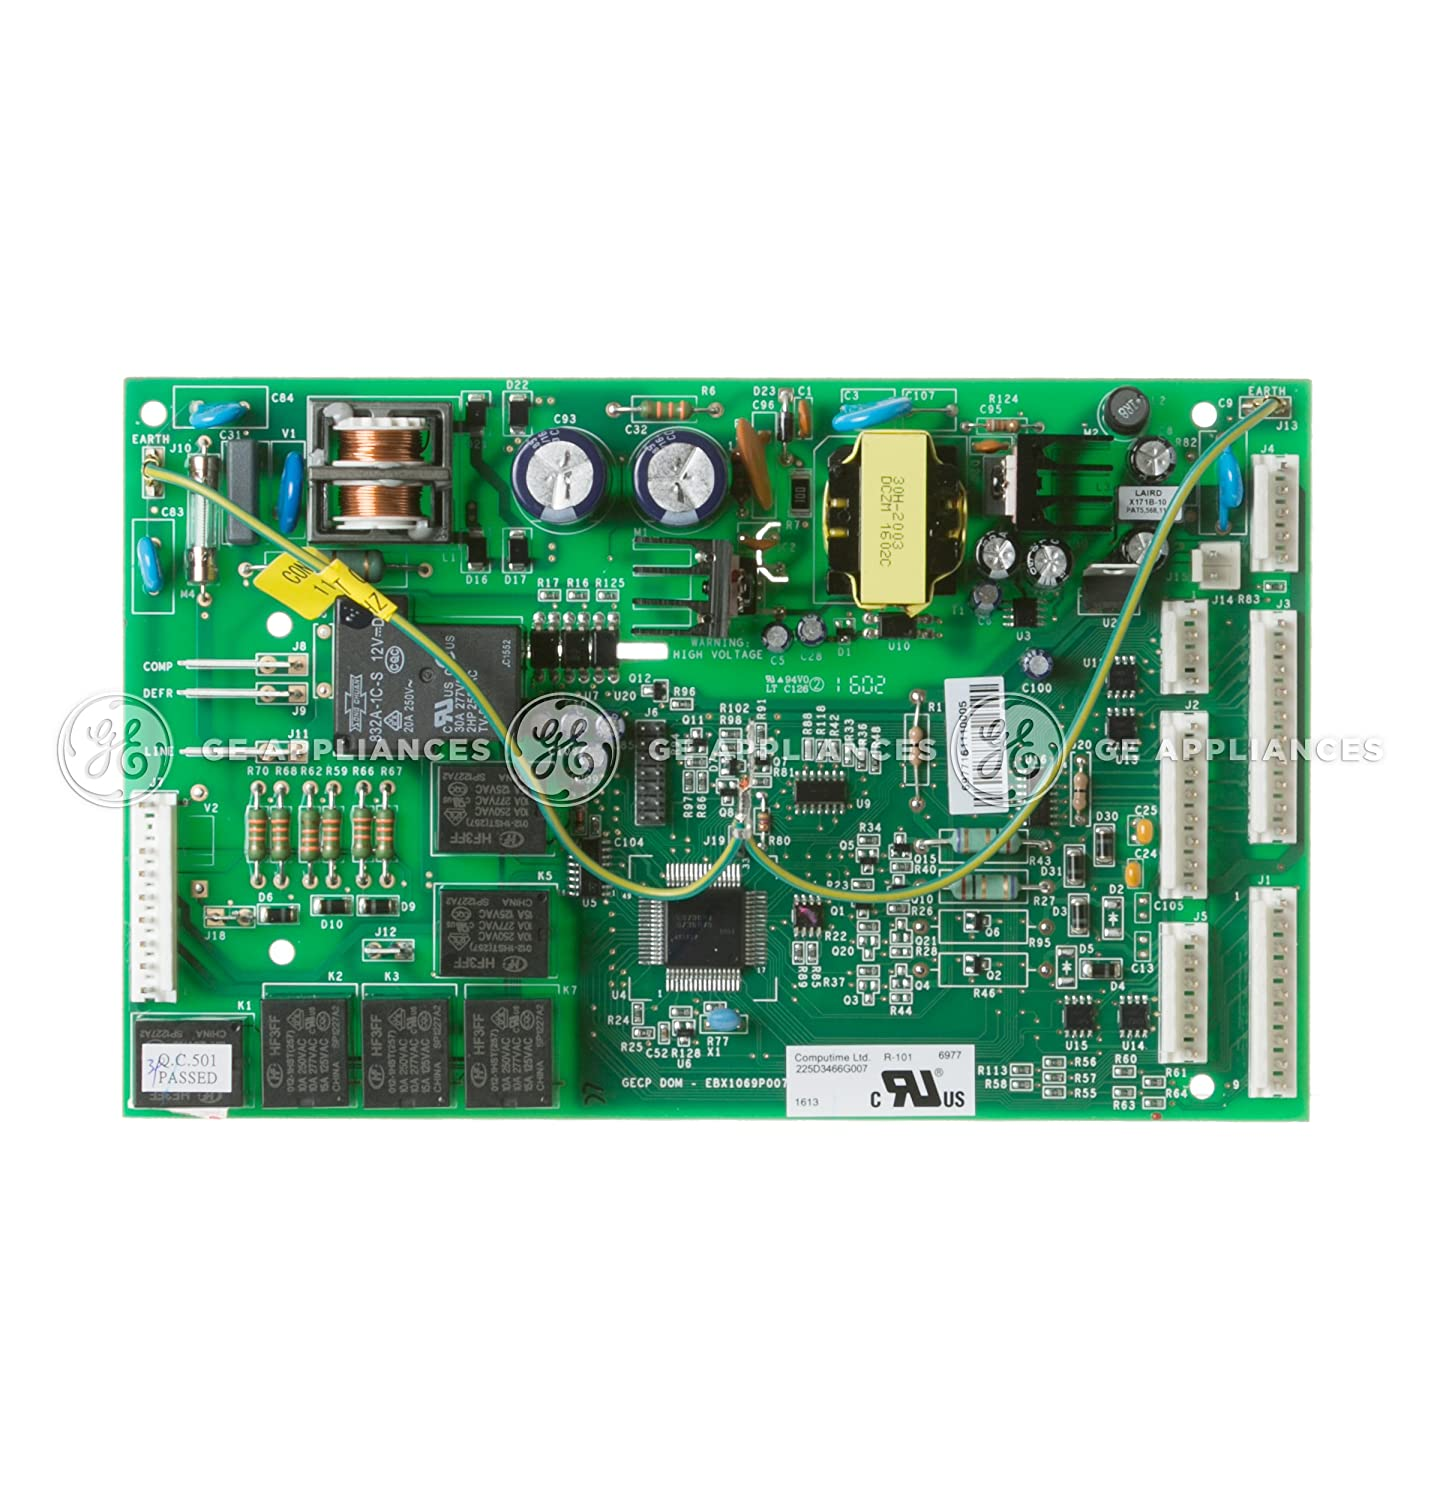 Ge WR55X11098 Refrigerator Electronic Control Board Genuine Original Equipment Manufacturer (OEM) Part